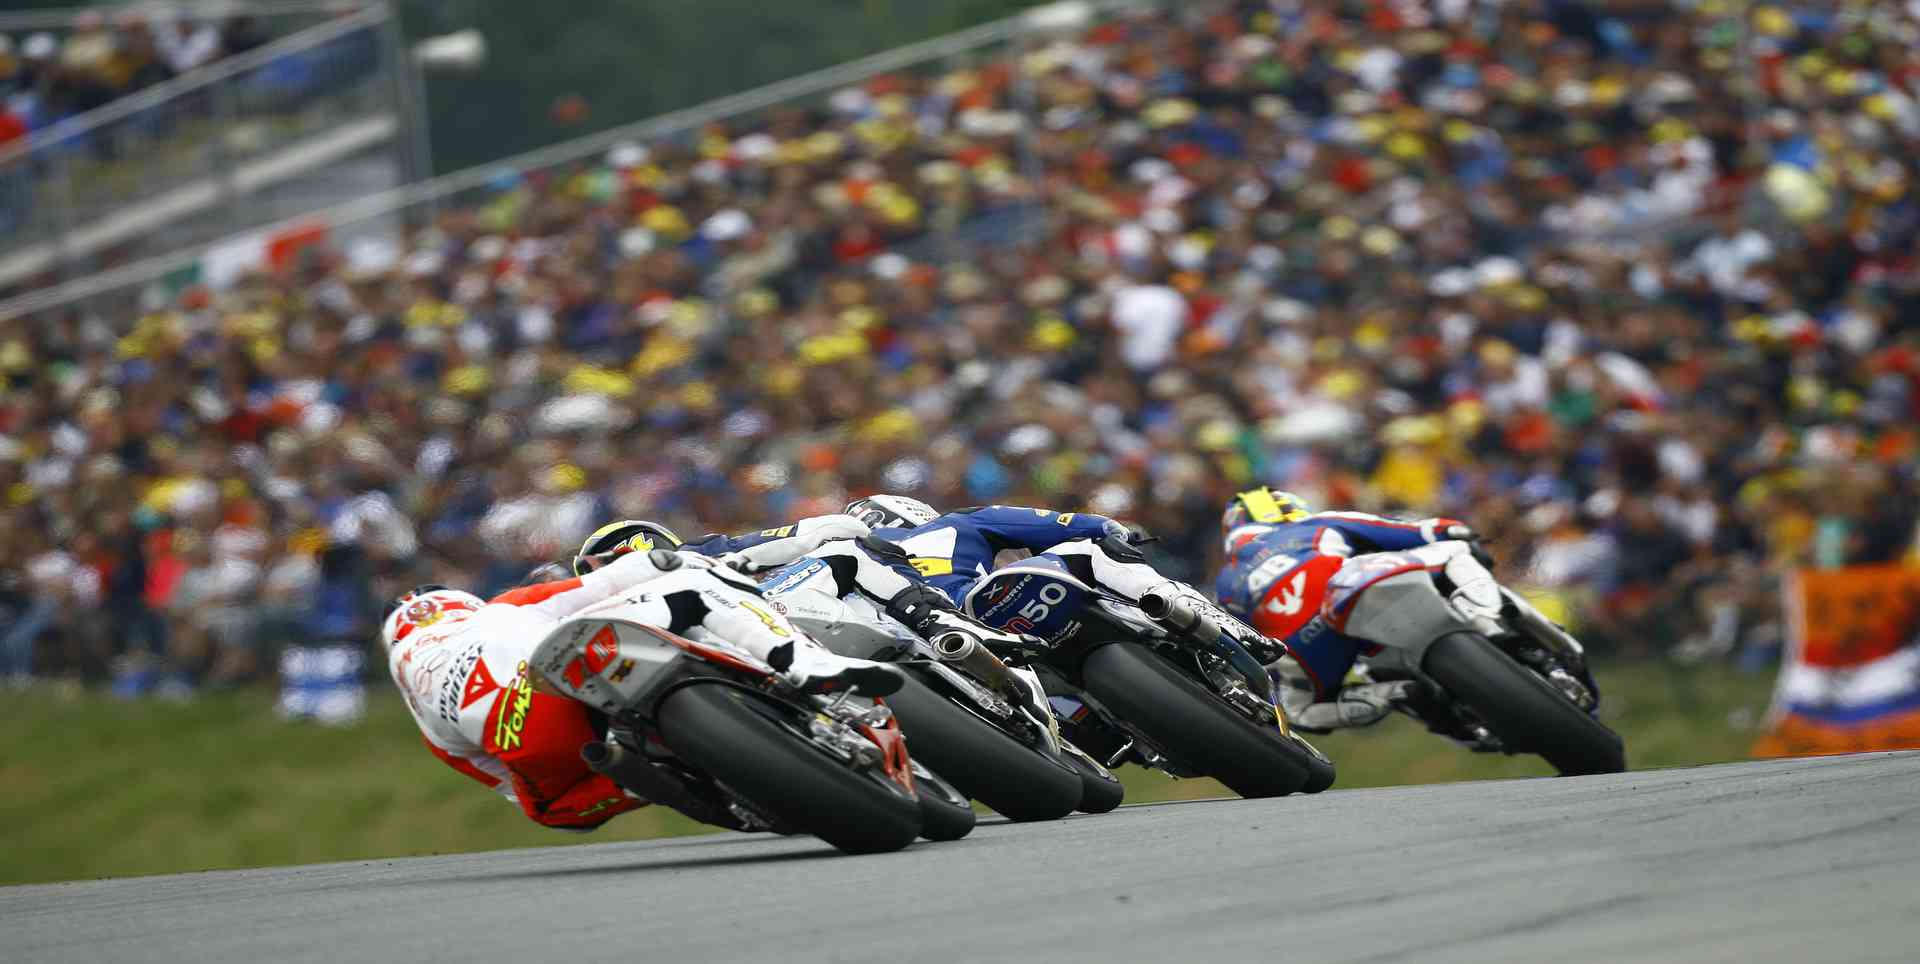 World Super Bike Championship